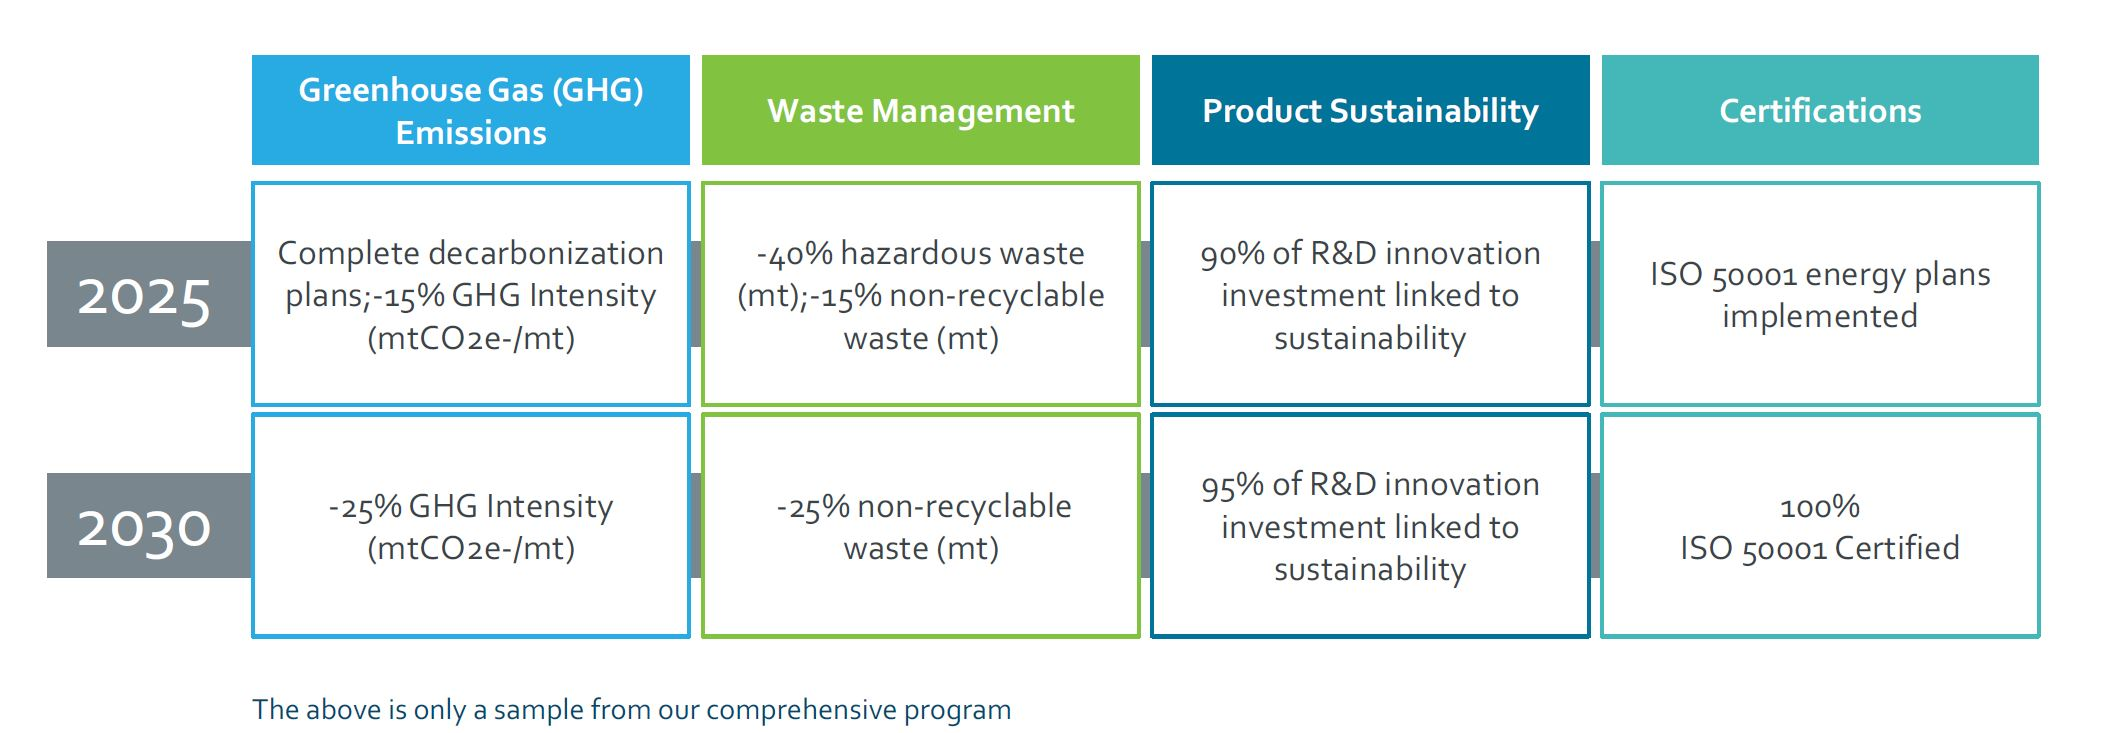 As we support our customers in achieving their own sustainability goals, we anticipate improving our environmental performance and have implemented a comprehensive set of sustainability goals for 2025 and 2030.